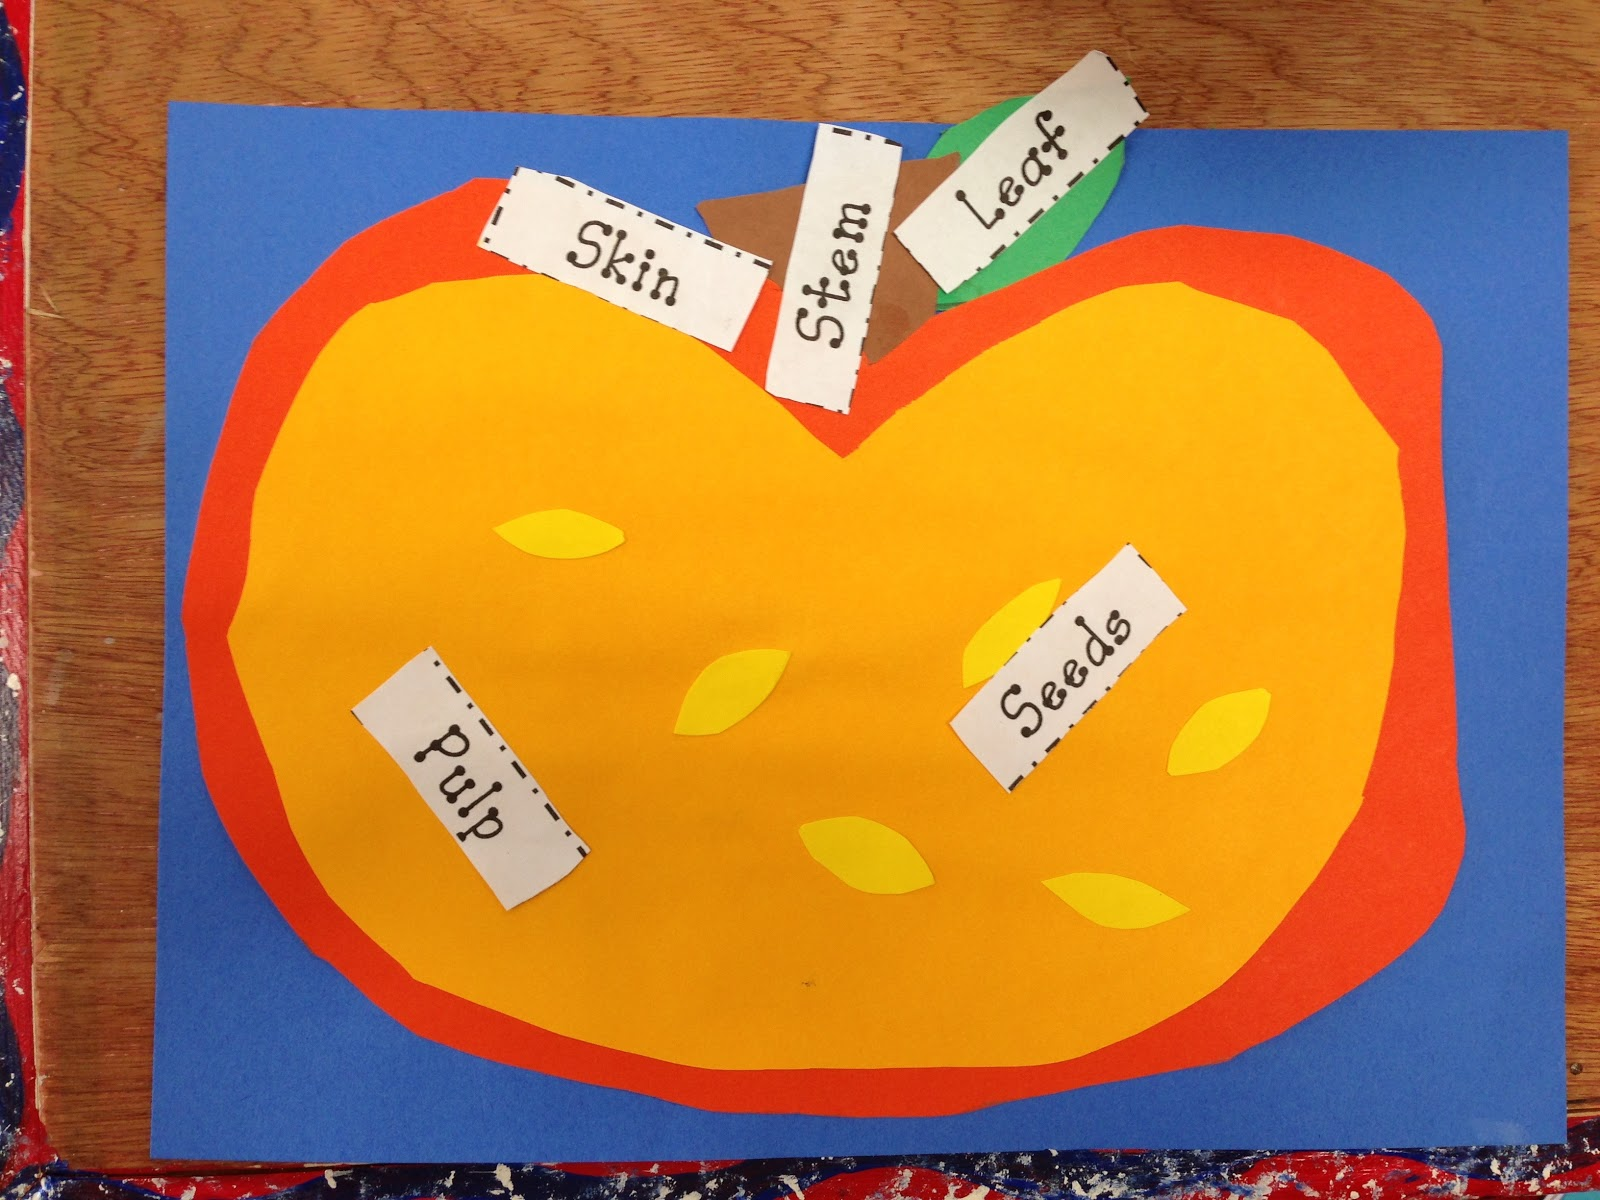 my student teacher also did a fun pumpkin diagram with my class  they  reviewed the parts of a pumpkin and then made their own pumpkin and labeled  the parts